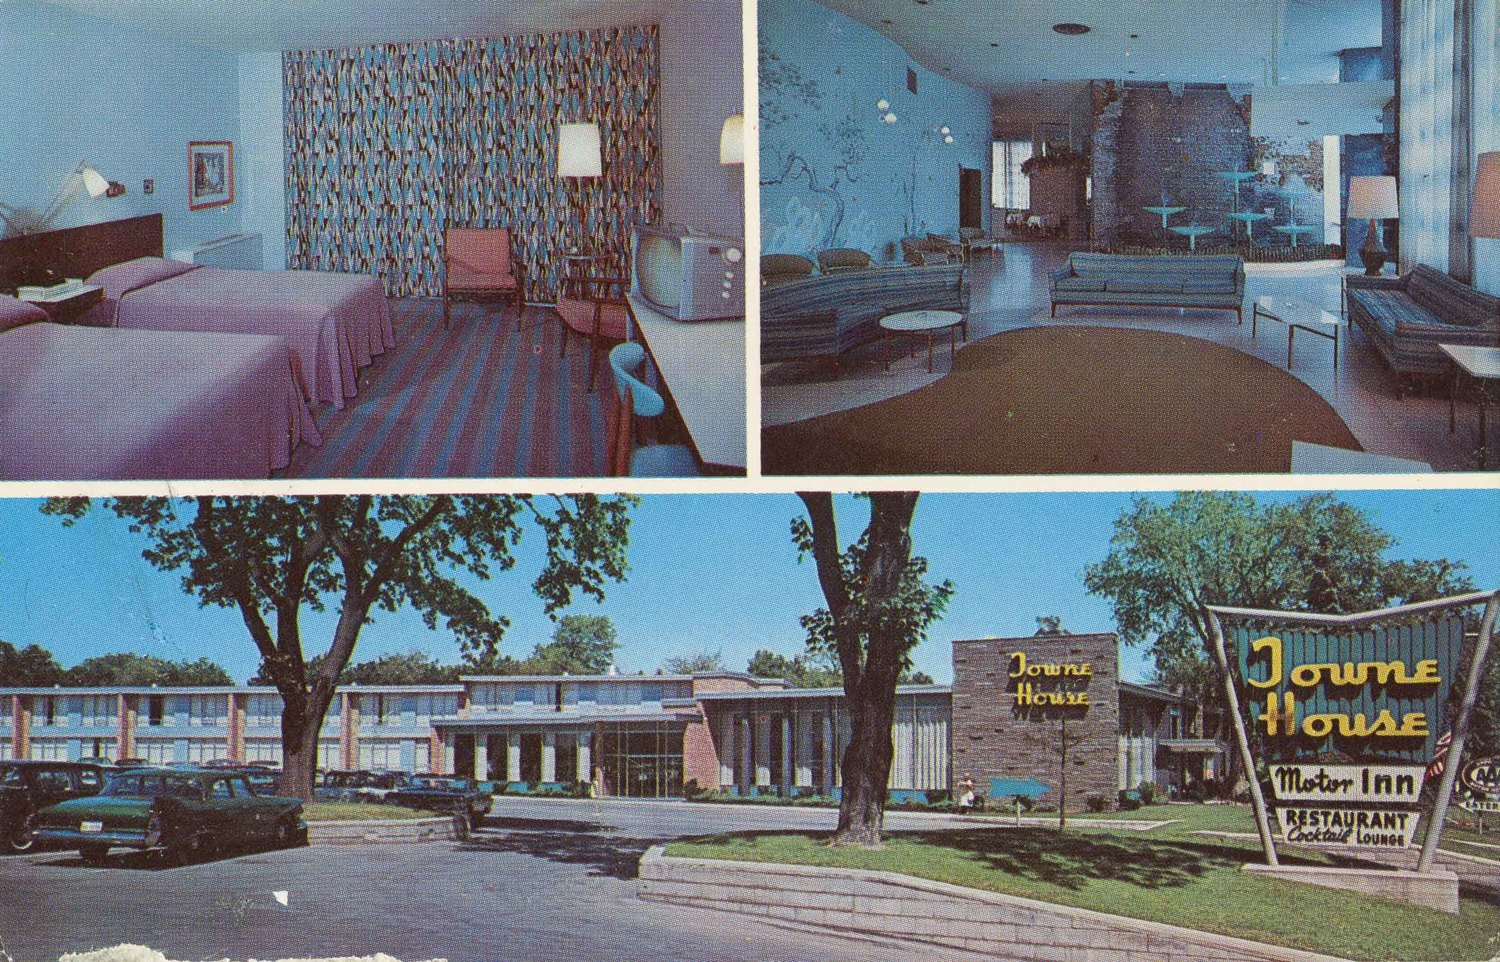 Towne House Motor Inn & Restaurant.